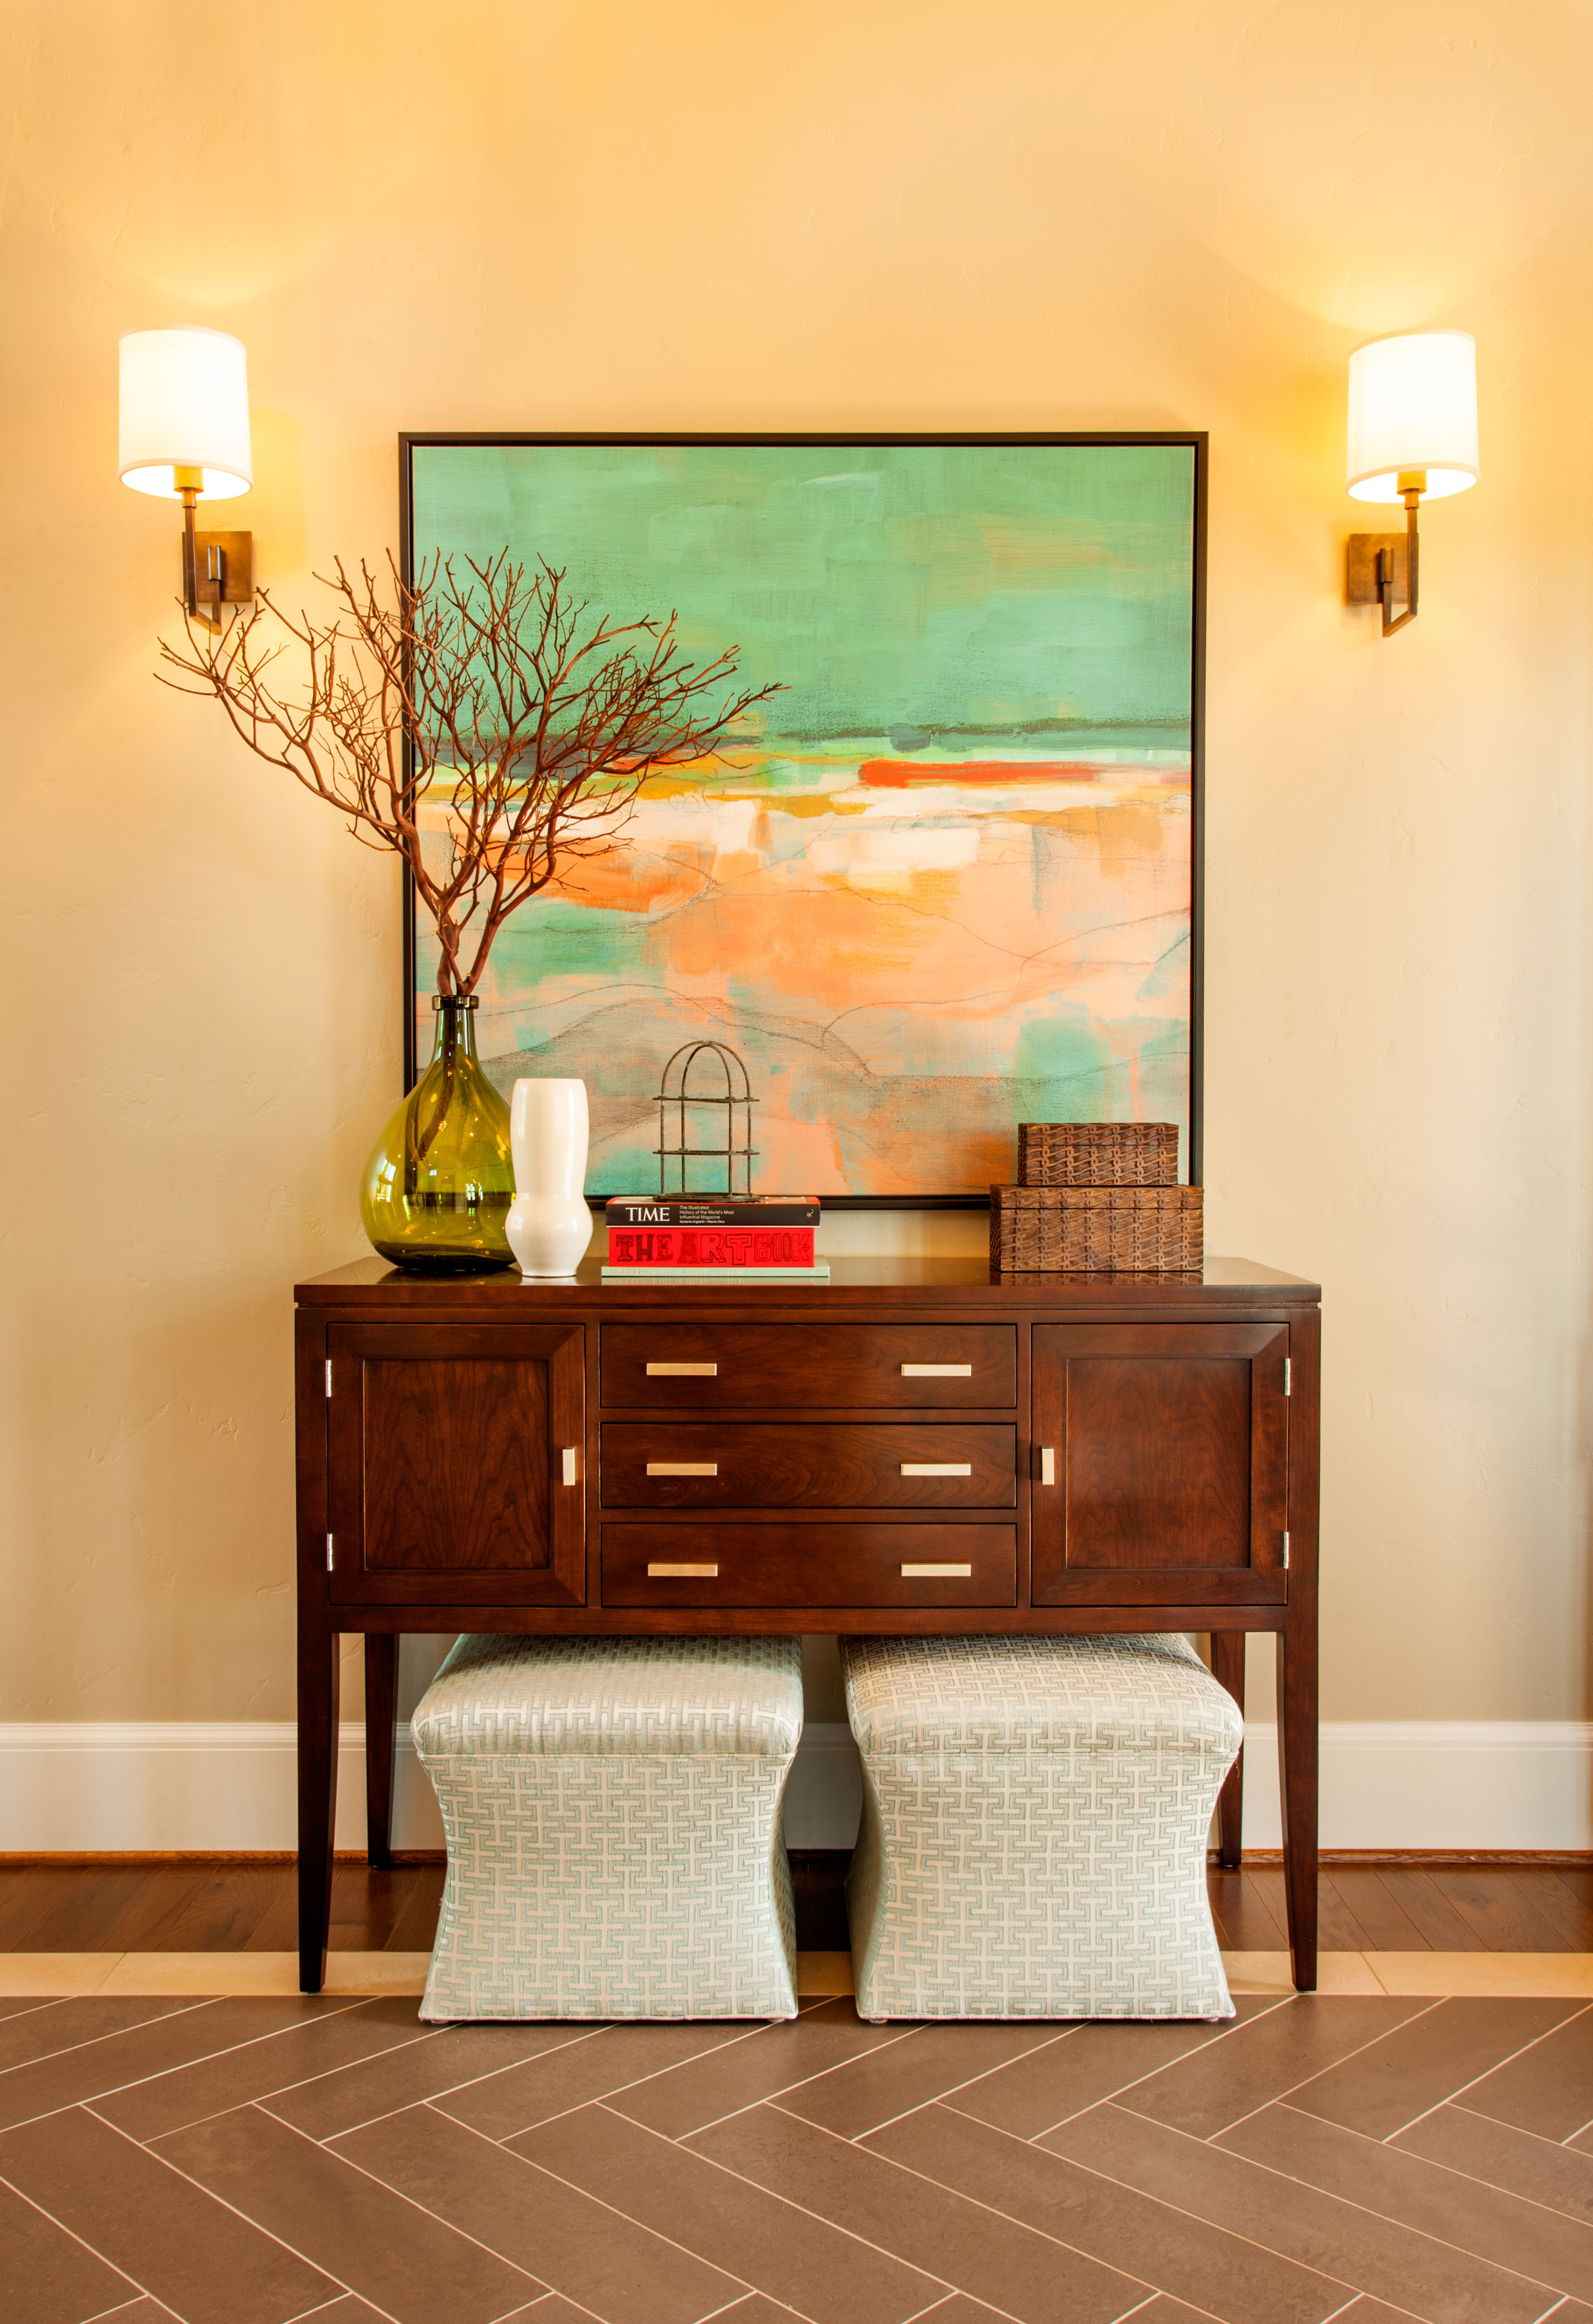 inspiraiton for entryway designs, bright entryways, inspiration for bright artwork